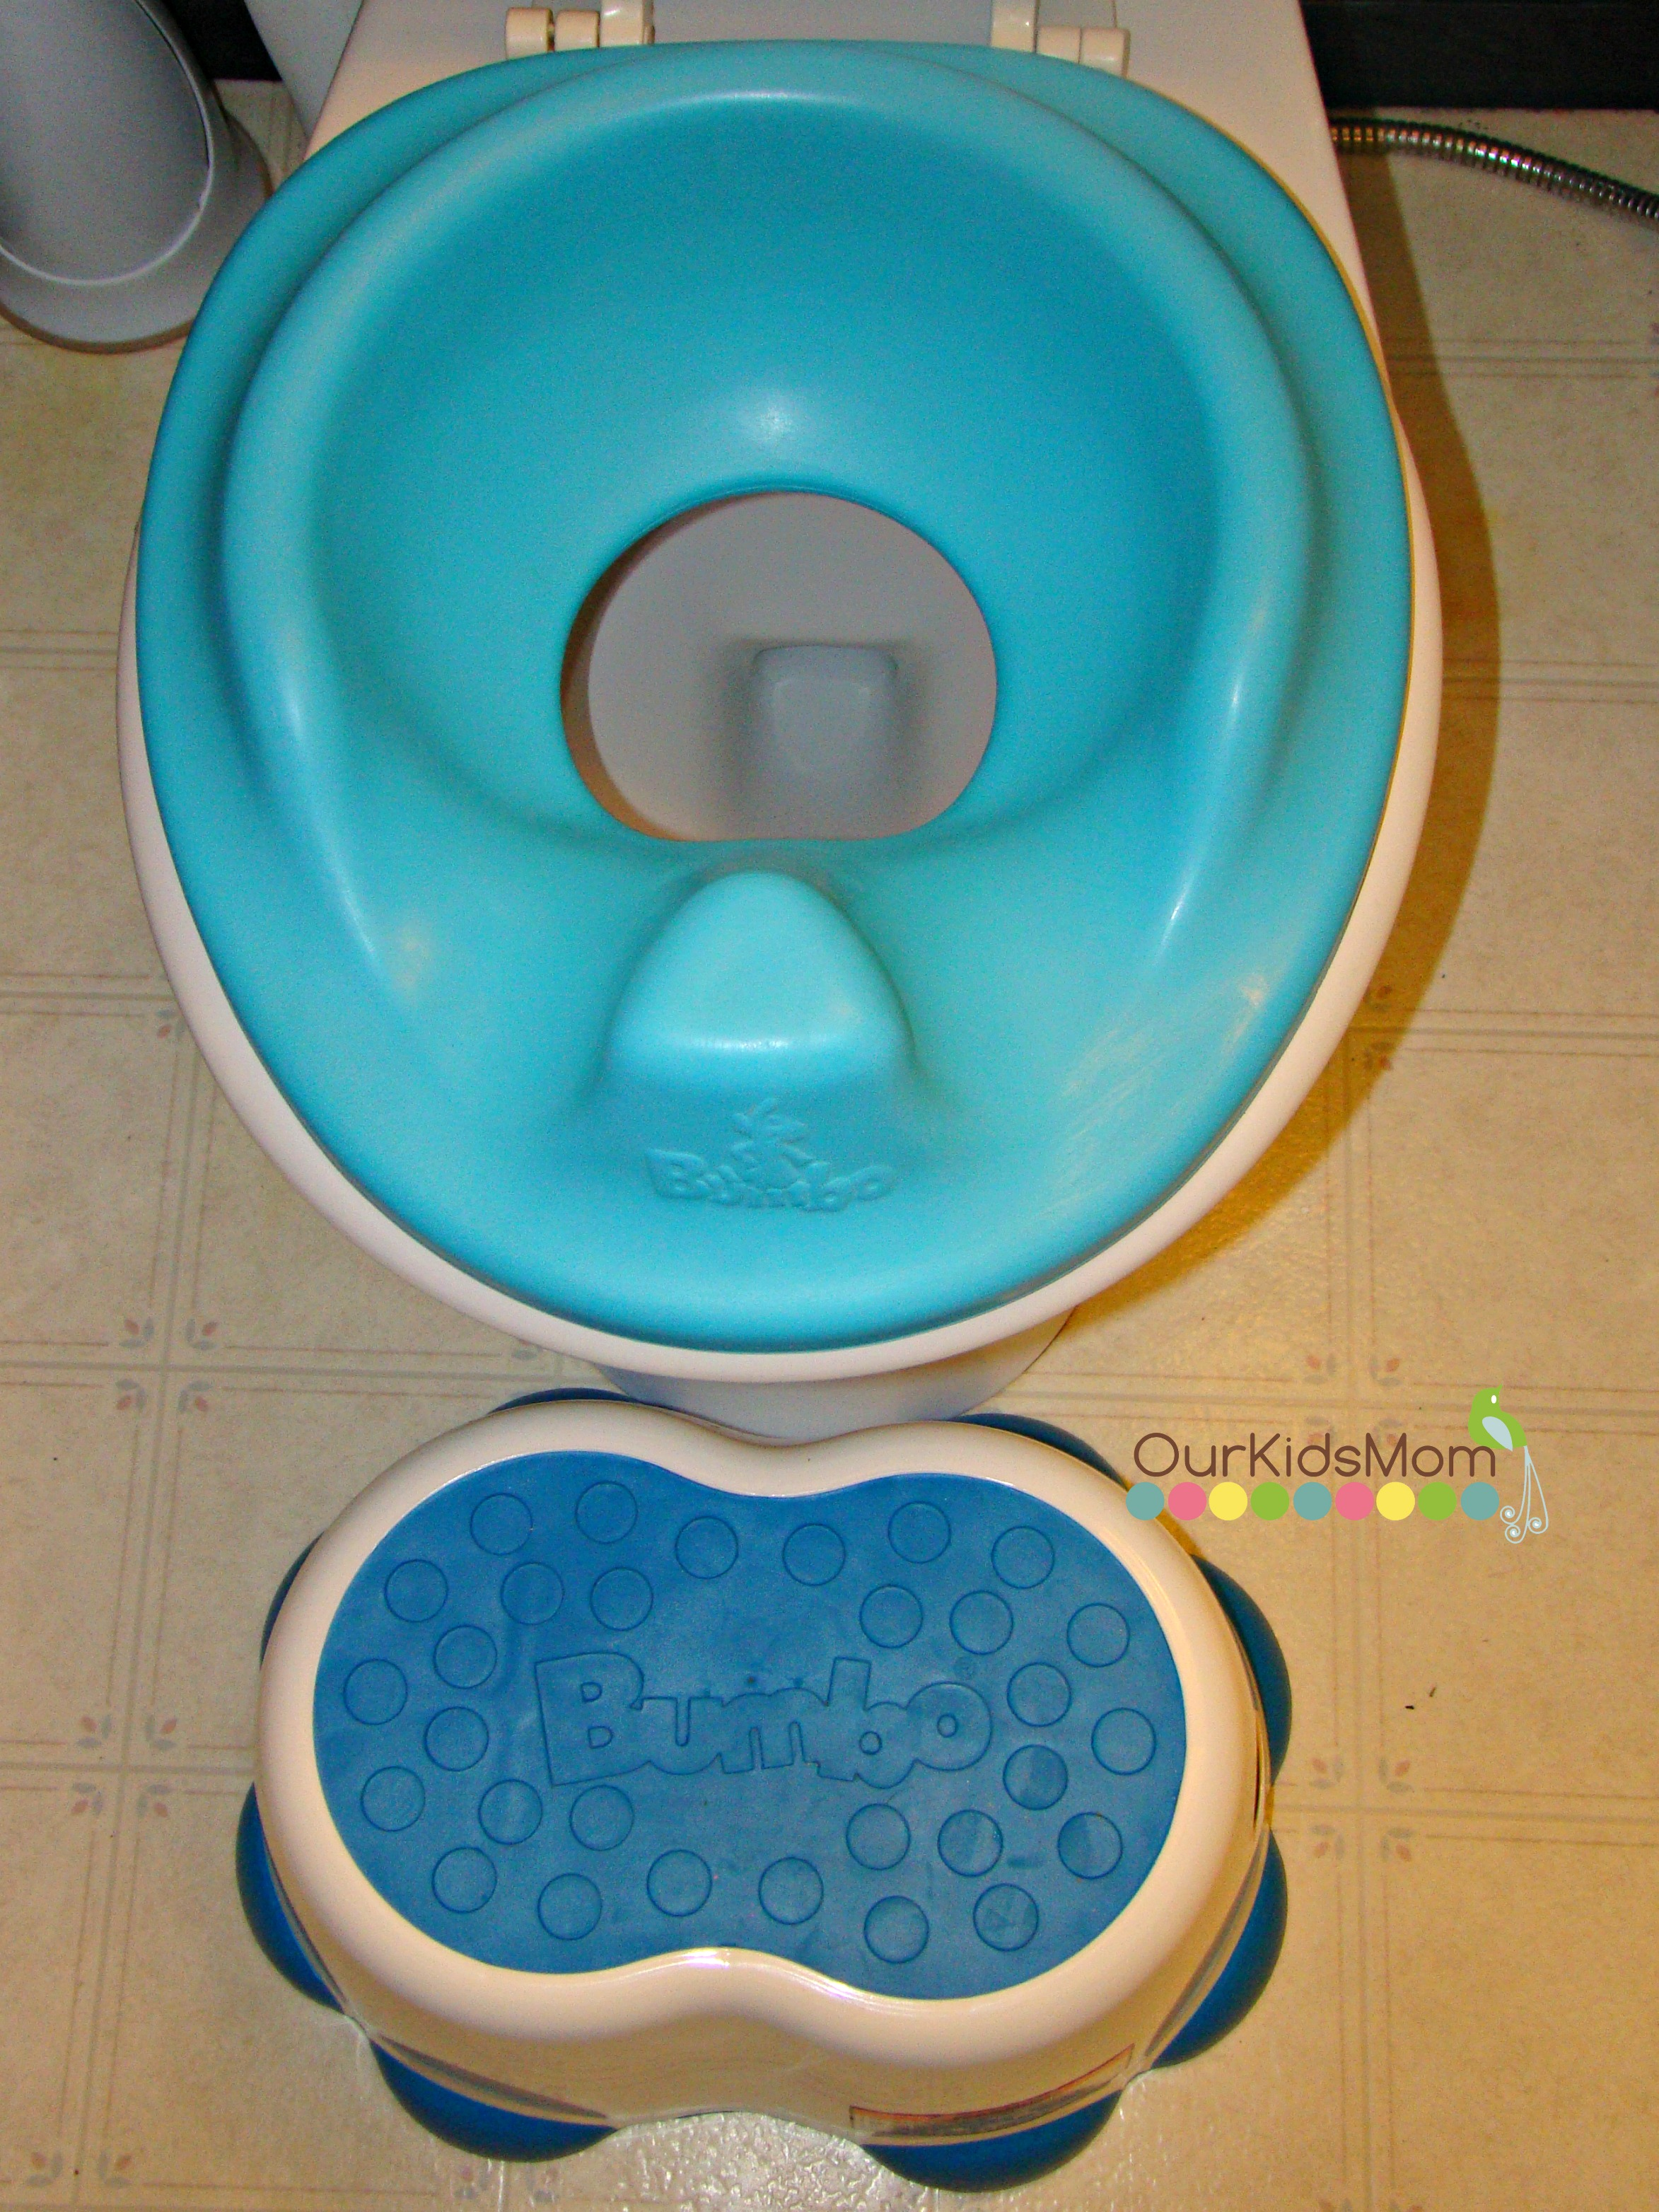 pic2 & Holiday Gift Guide 2013 | Bumbo Potty Trainer and Step Stool islam-shia.org